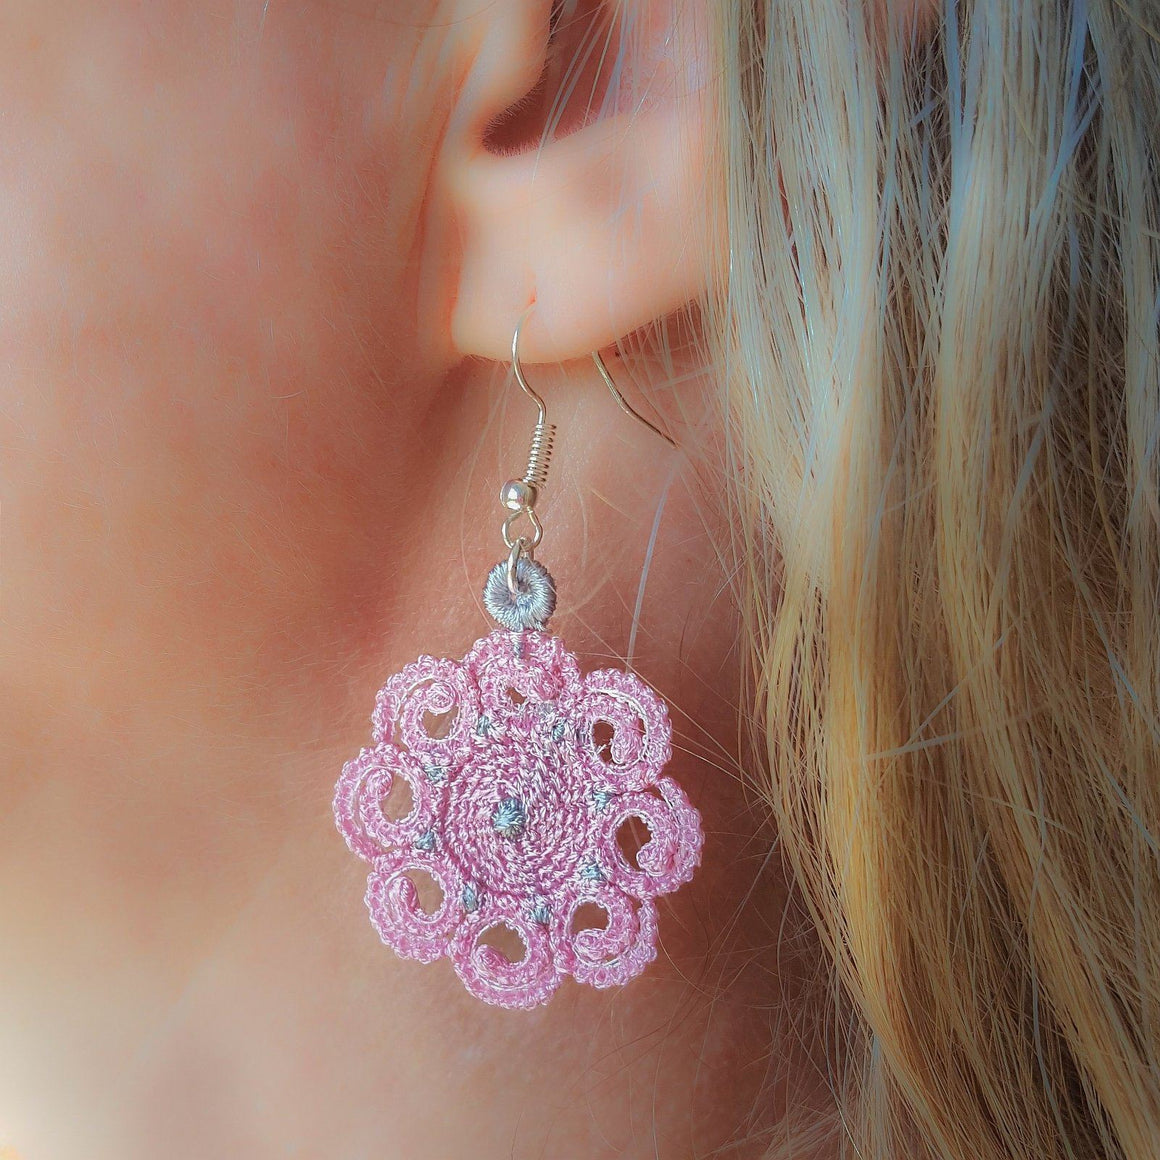 Elizabeth Miniature Freestanding lace Earrings - a-stitch-a-half